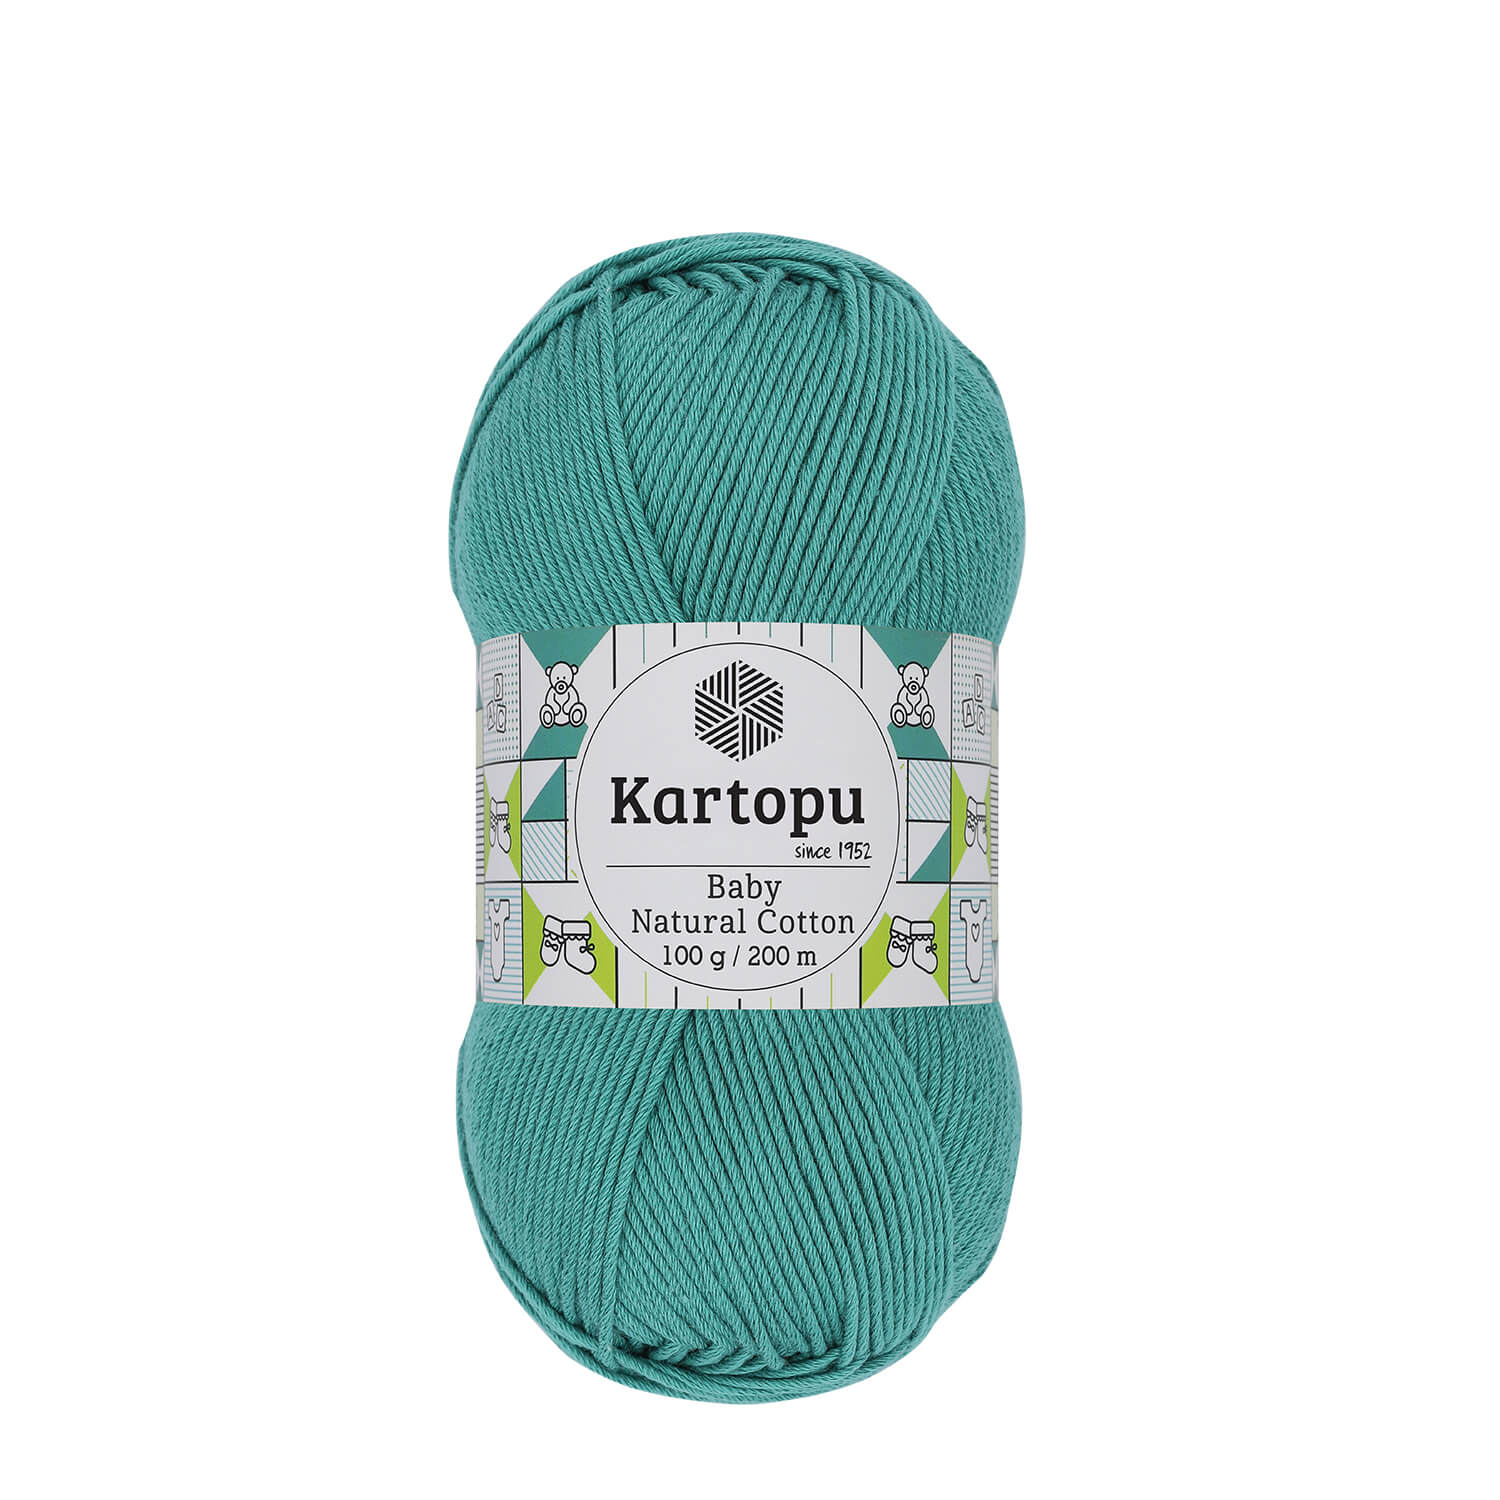 Baby Natural Cotton K418